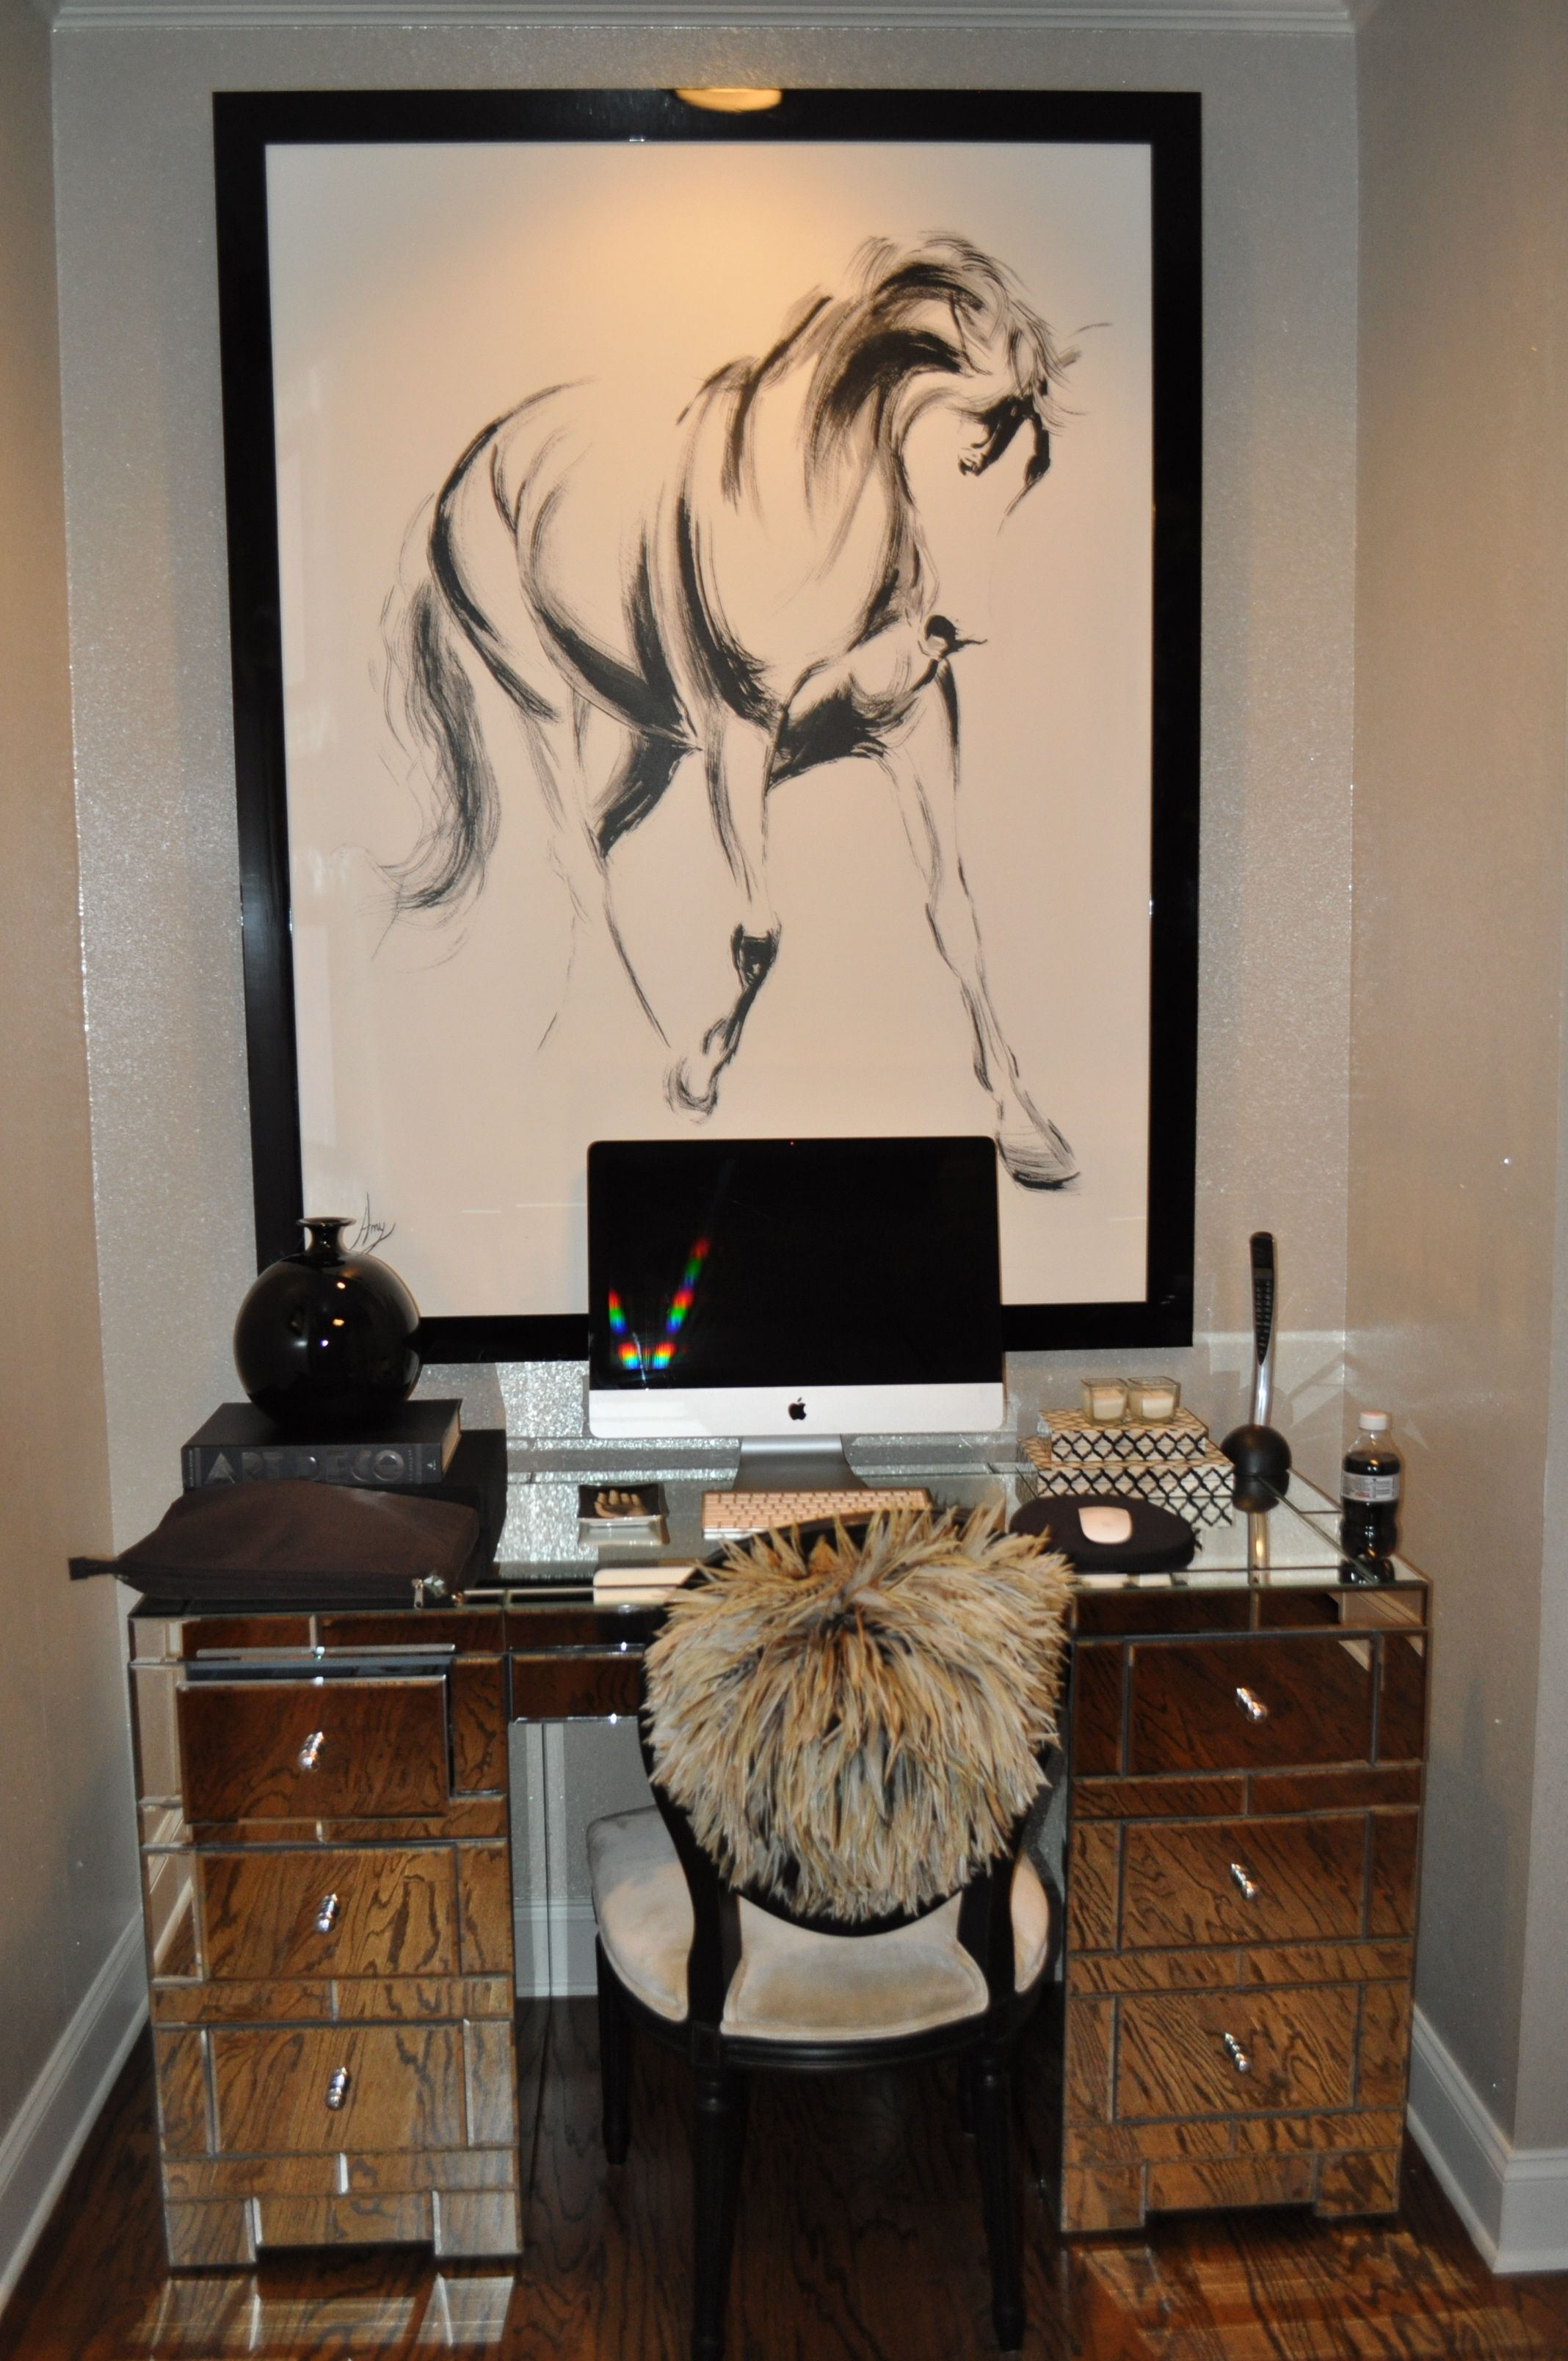 Hampton fashion styles pics the kitchen living room photo are courtesy of allen cooley Horse design kitchen accessories